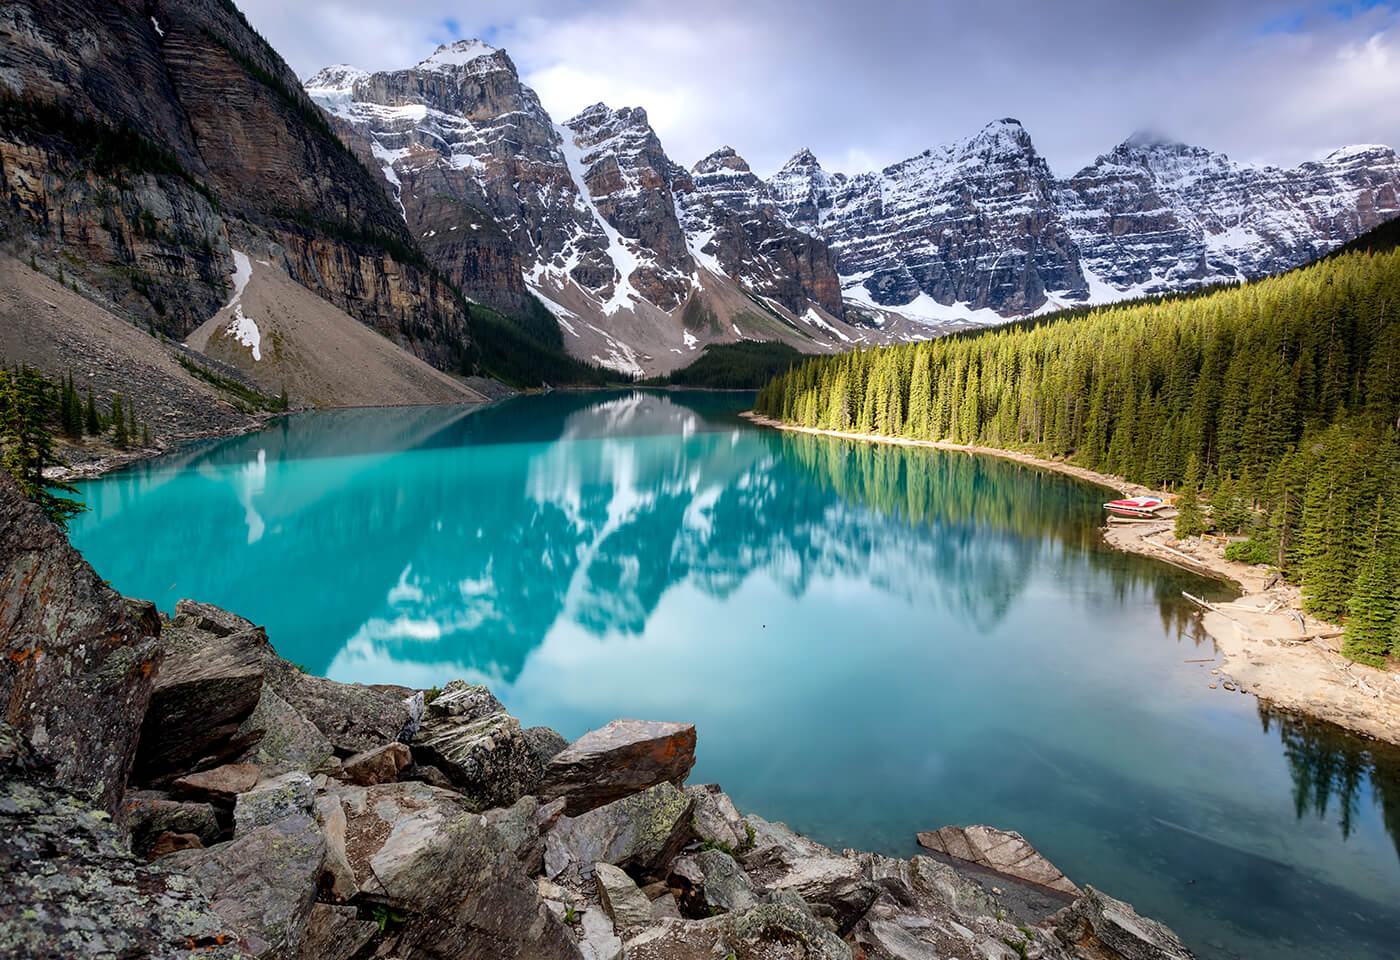 Tony Irving S Guide To Photographing The Canadian Rockies